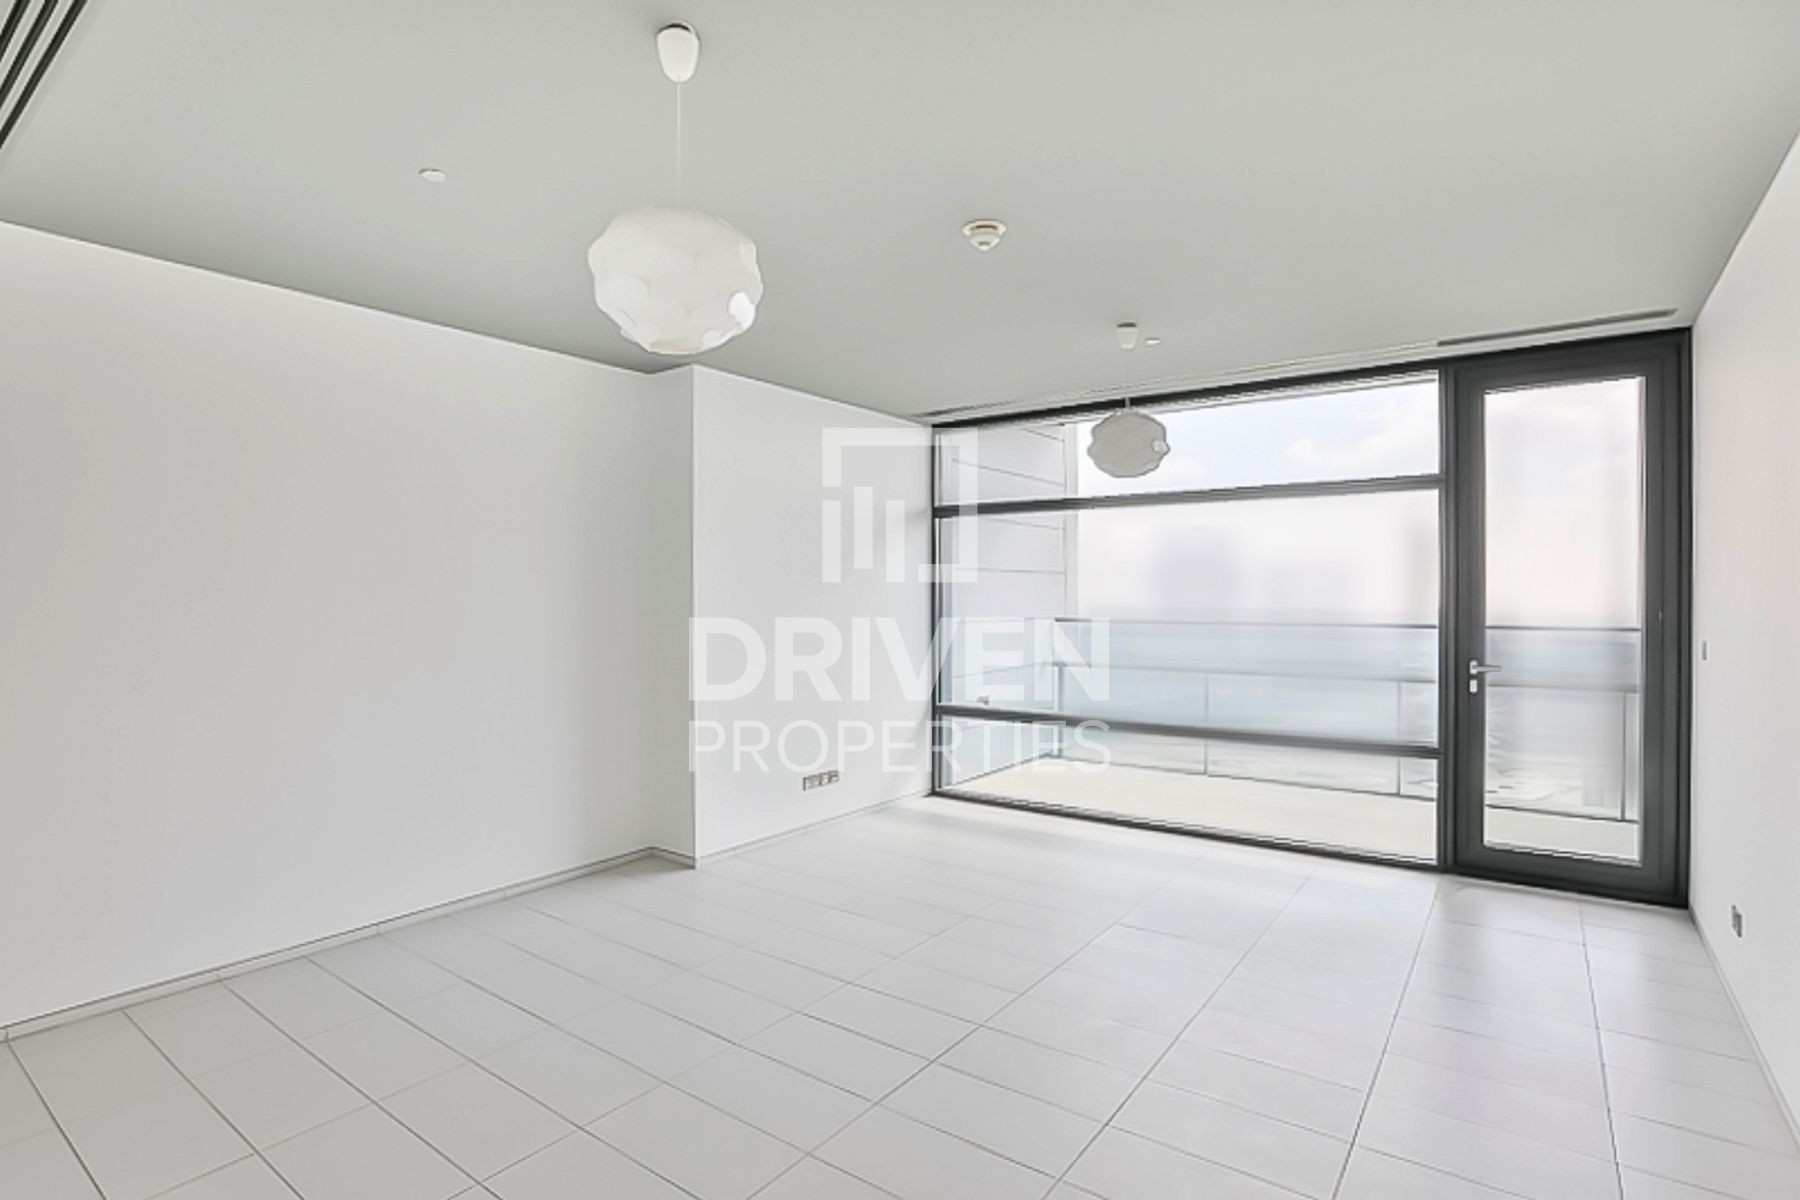 Best Price | Large 2Bed with 2 balconies